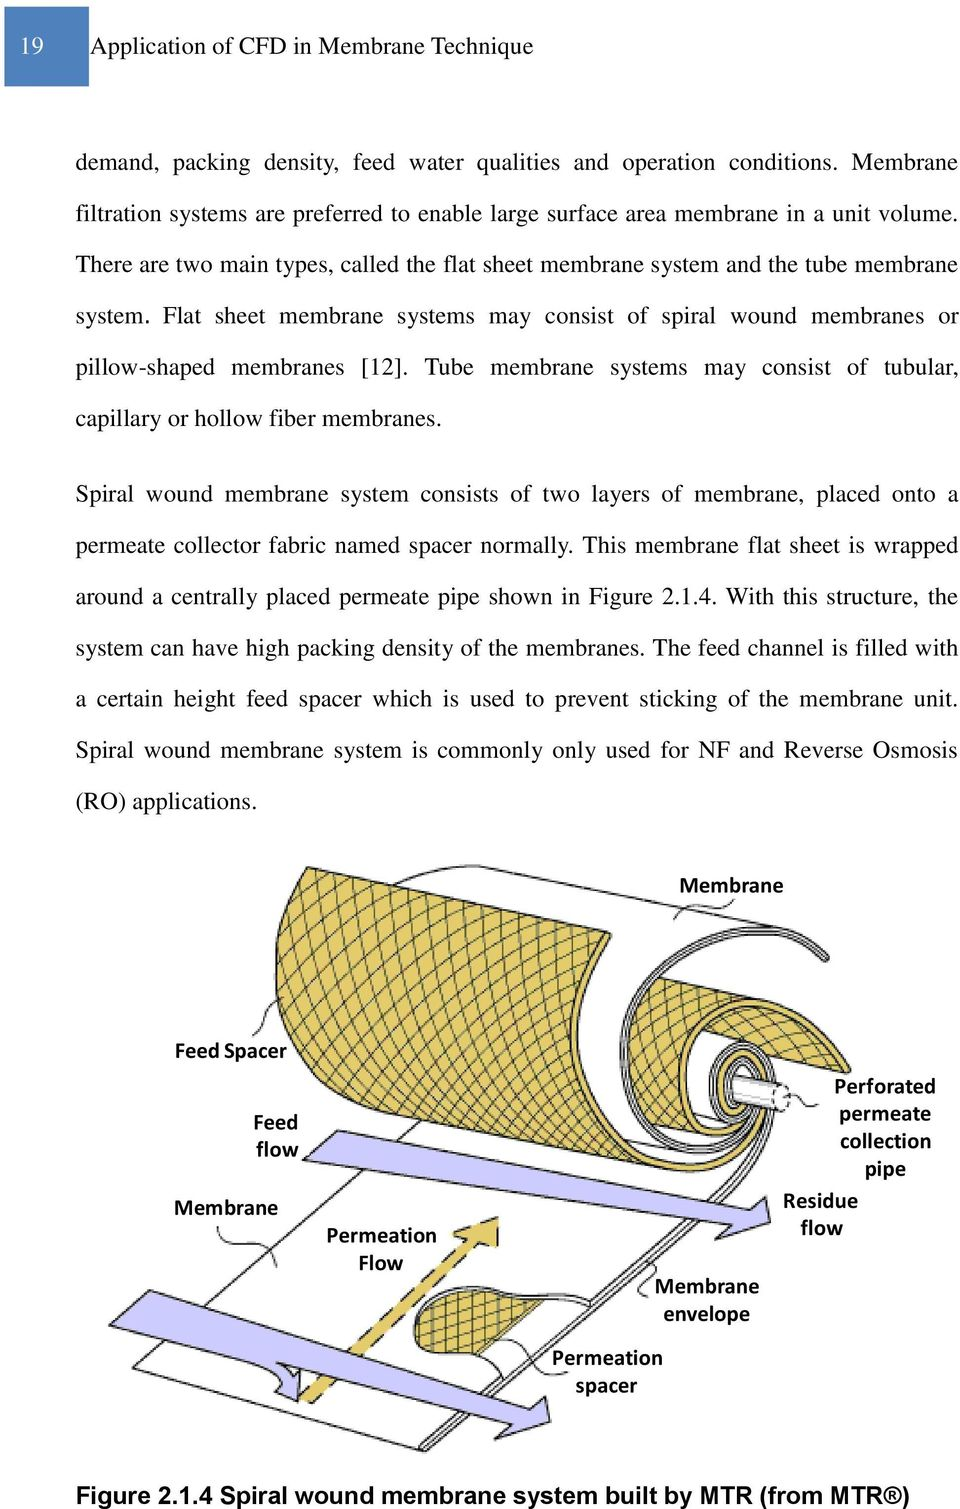 Flat sheet membrane systems may consist of spiral wound membranes or pillow-shaped membranes [12]. Tube membrane systems may consist of tubular, capillary or hollow fiber membranes.